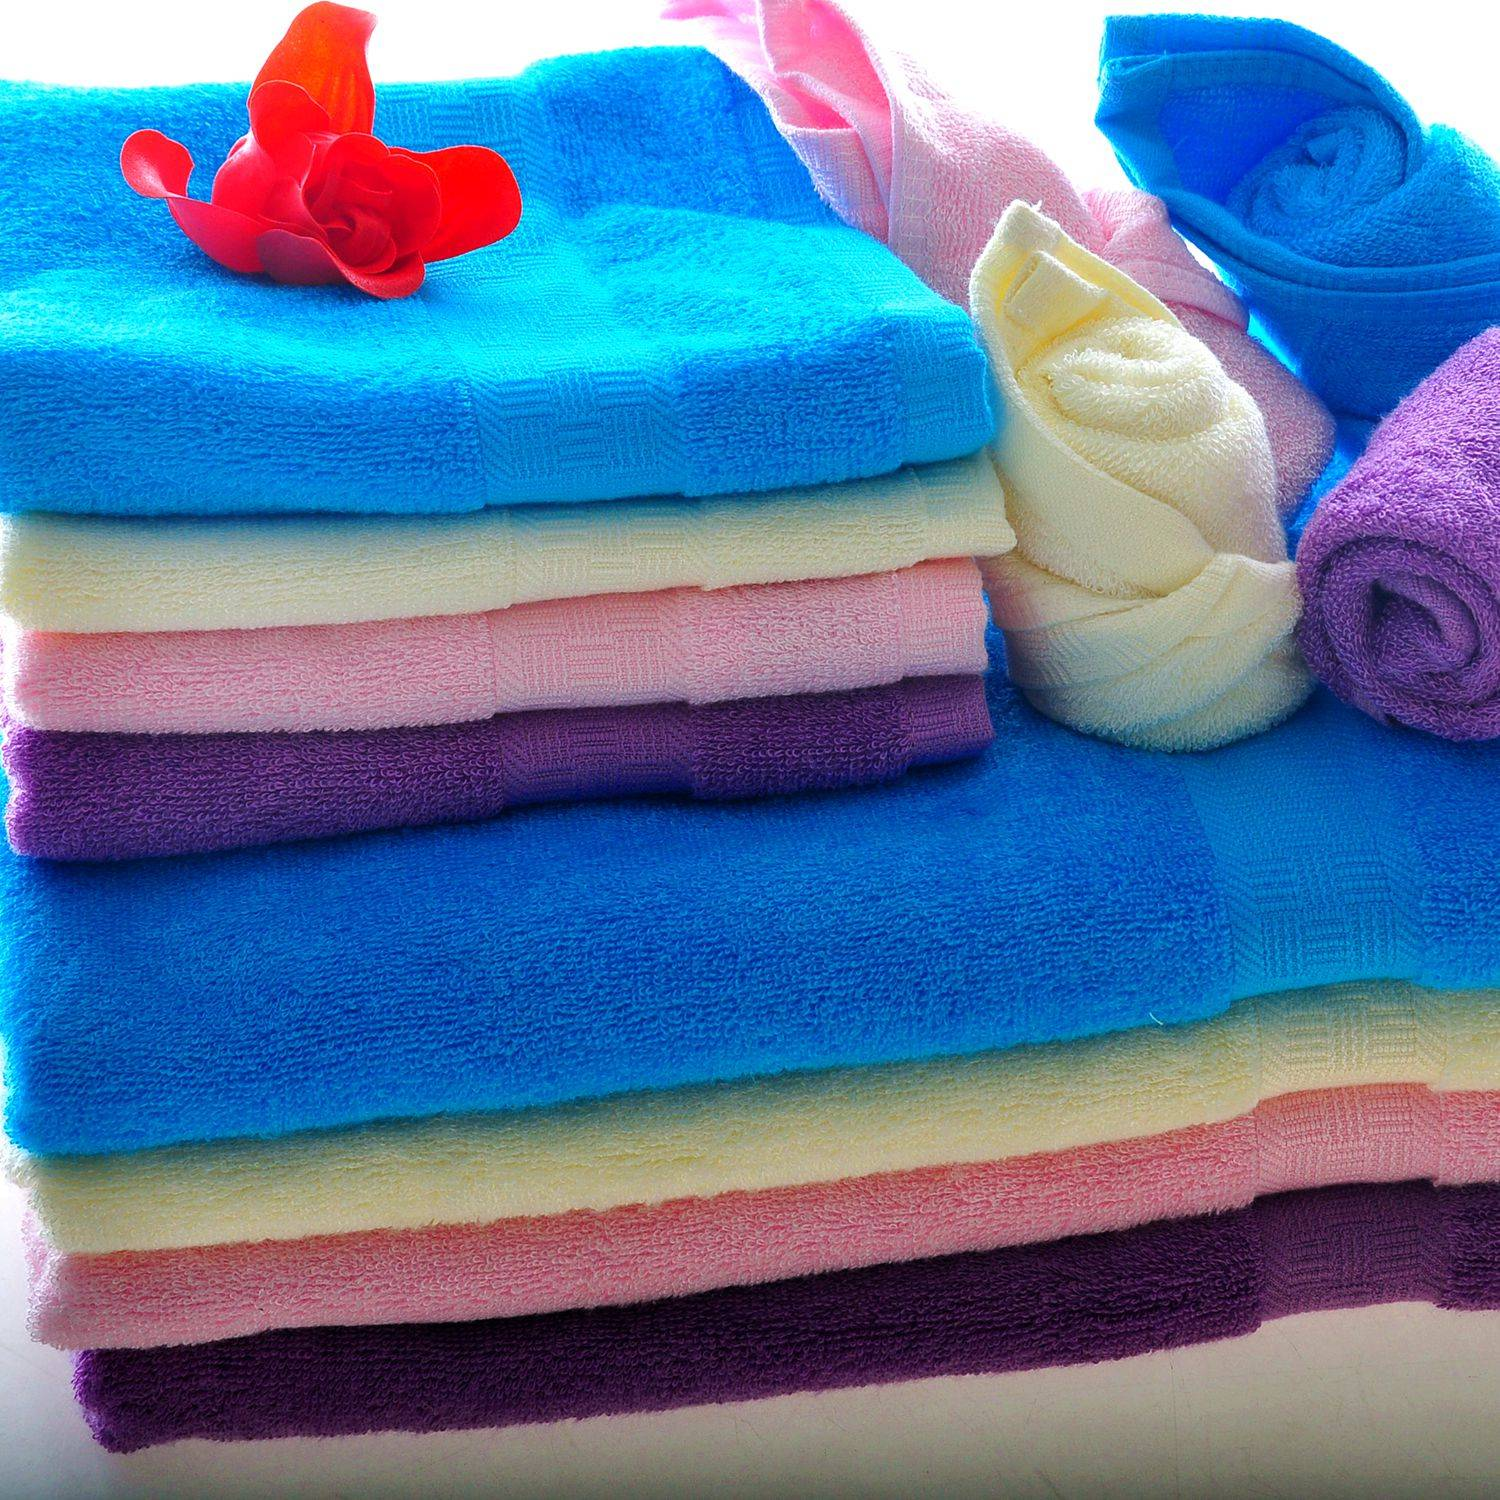 Easy clean and super soft towel